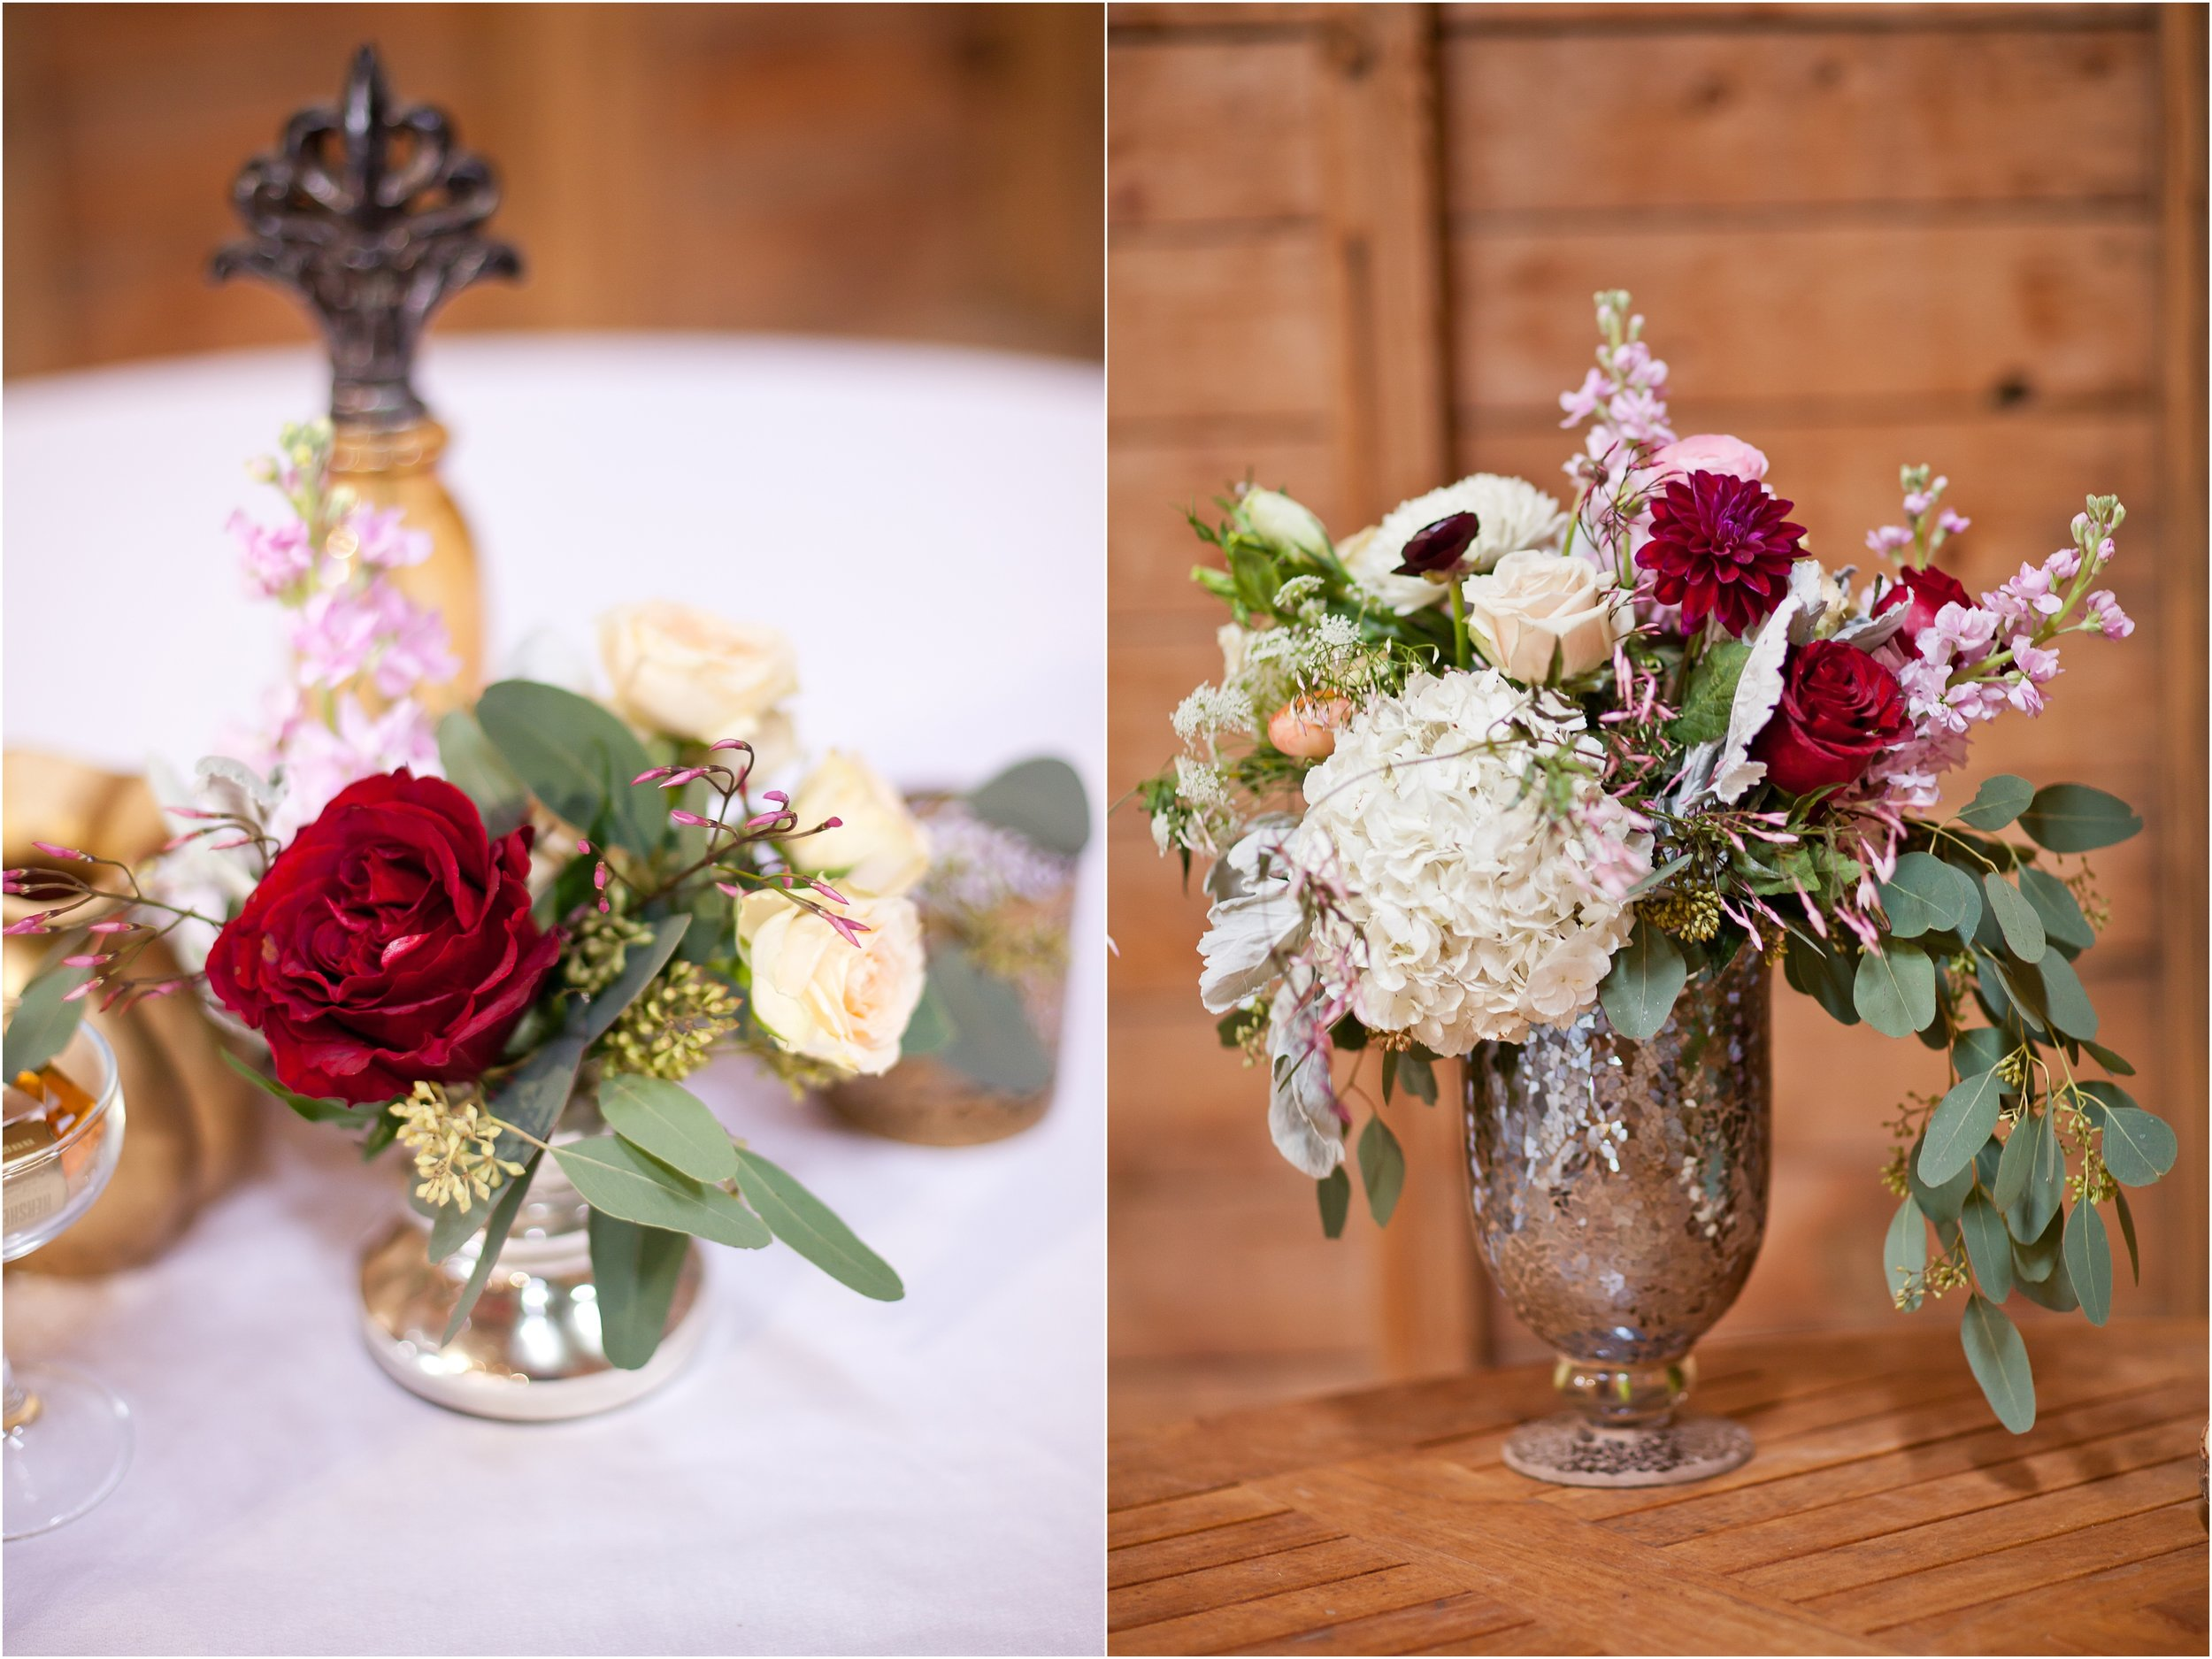 durango-wedding-florist.jpg